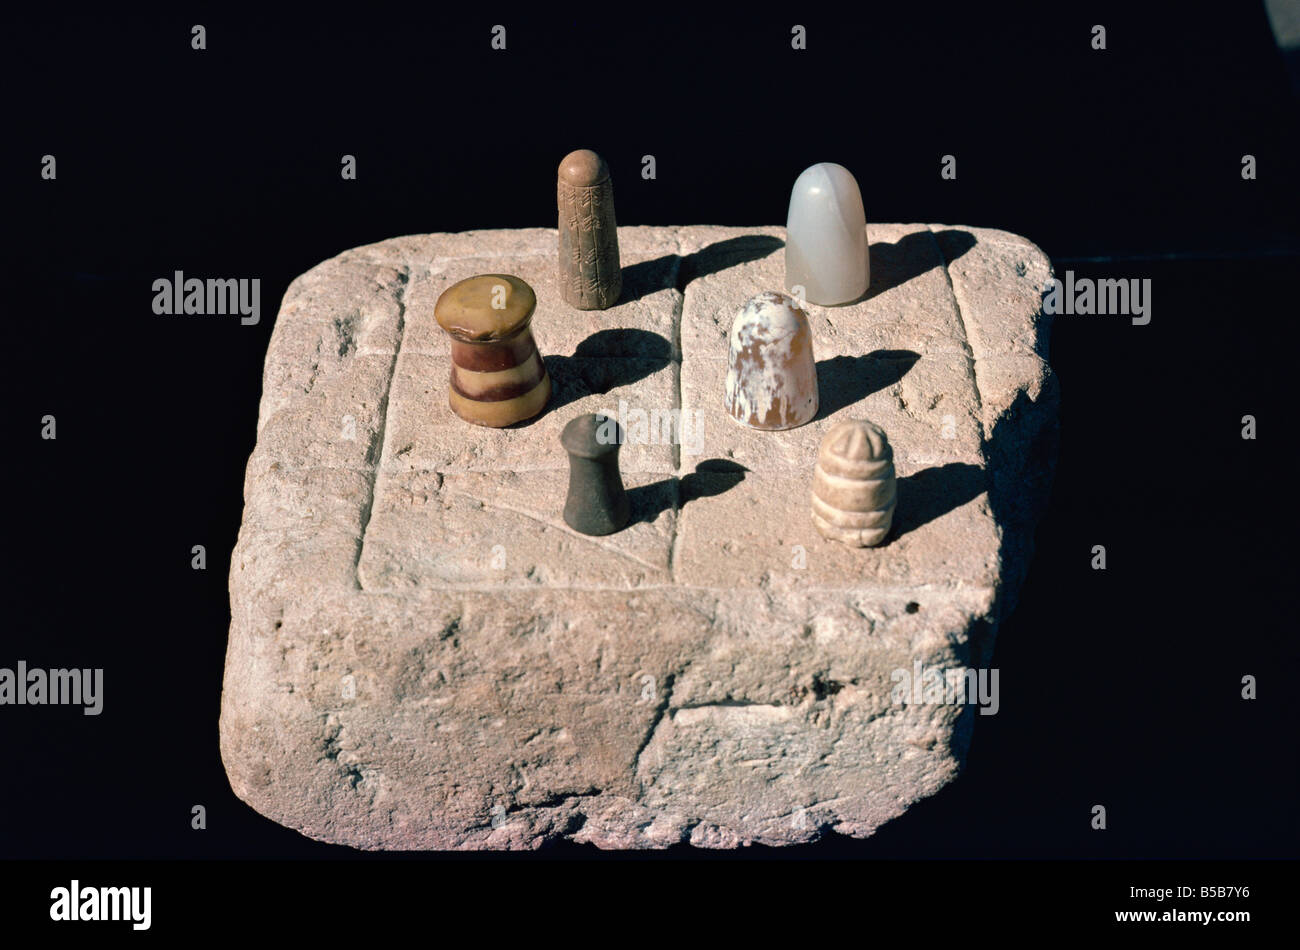 The chess board from the Indus civilisation at Mohenjodaro in the Karachi Museum Pakistan Asia - Stock Image